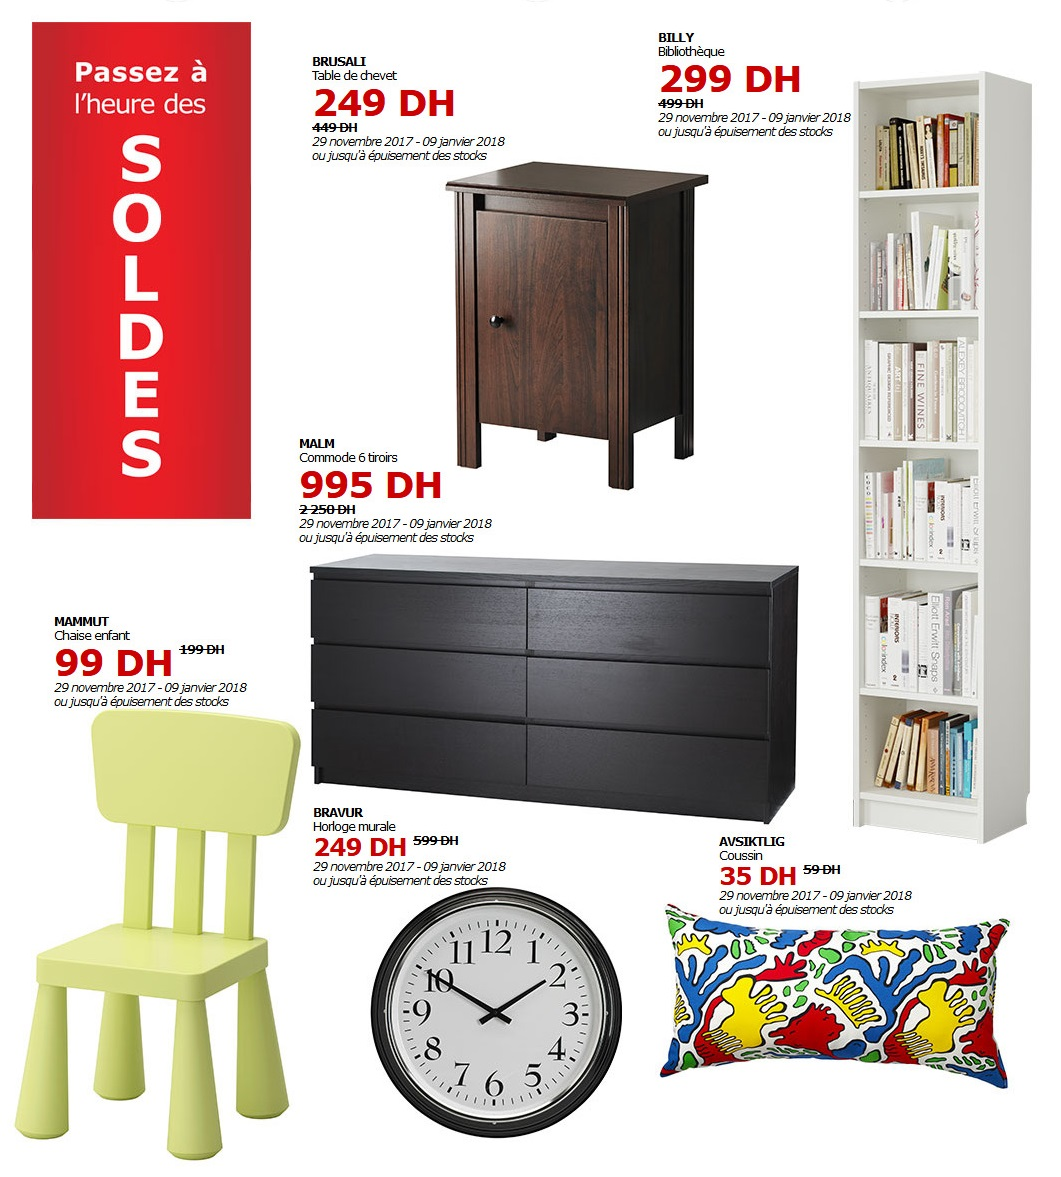 soldes ikea maroc jusqu 39 au 9 janvier 2018 lecatalogue 100 catalogues. Black Bedroom Furniture Sets. Home Design Ideas